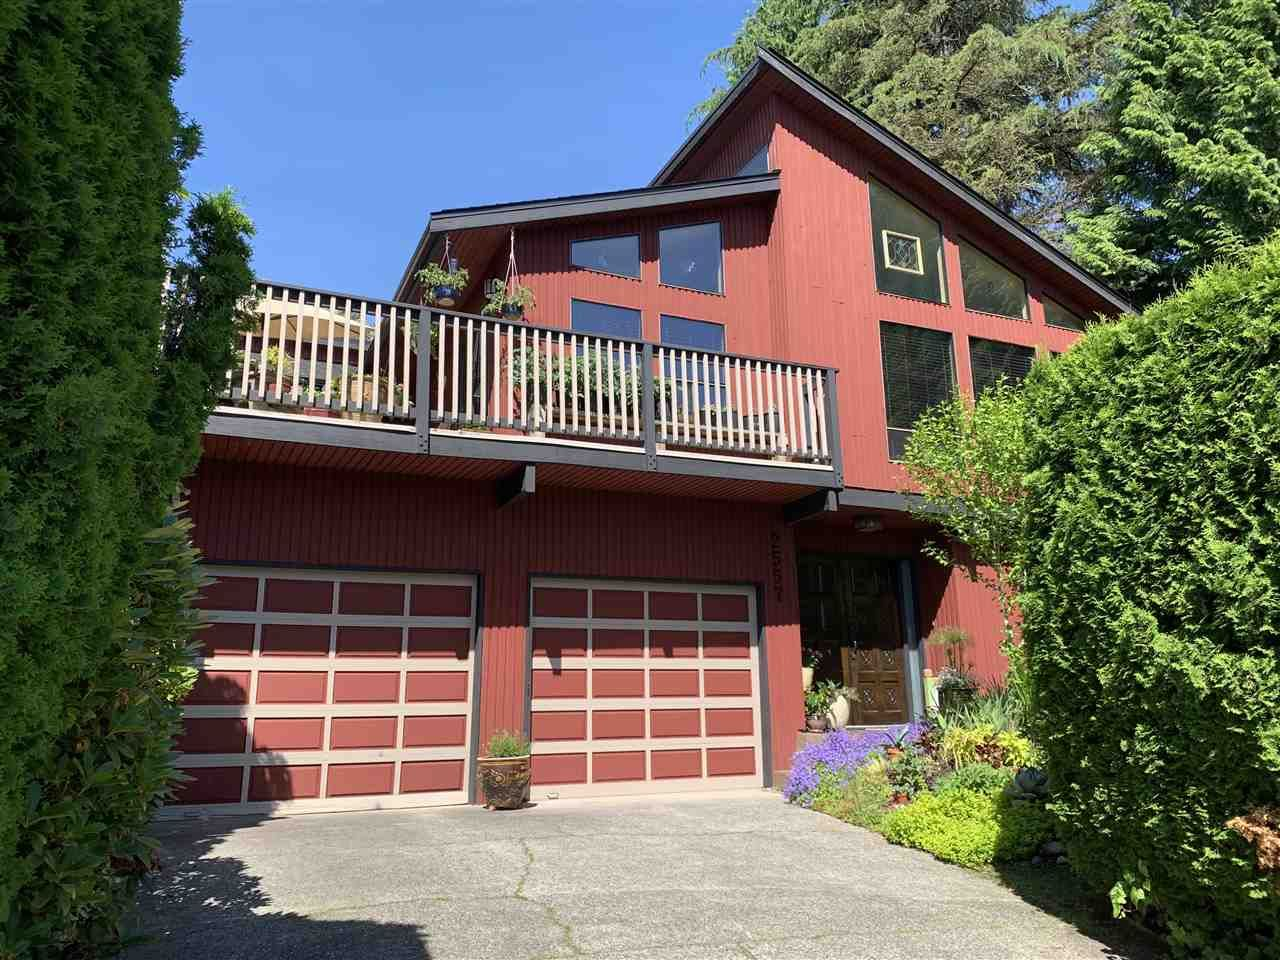 Main Photo: 2557 PEREGRINE PLACE in Coquitlam: Upper Eagle Ridge House for sale : MLS®# R2467956